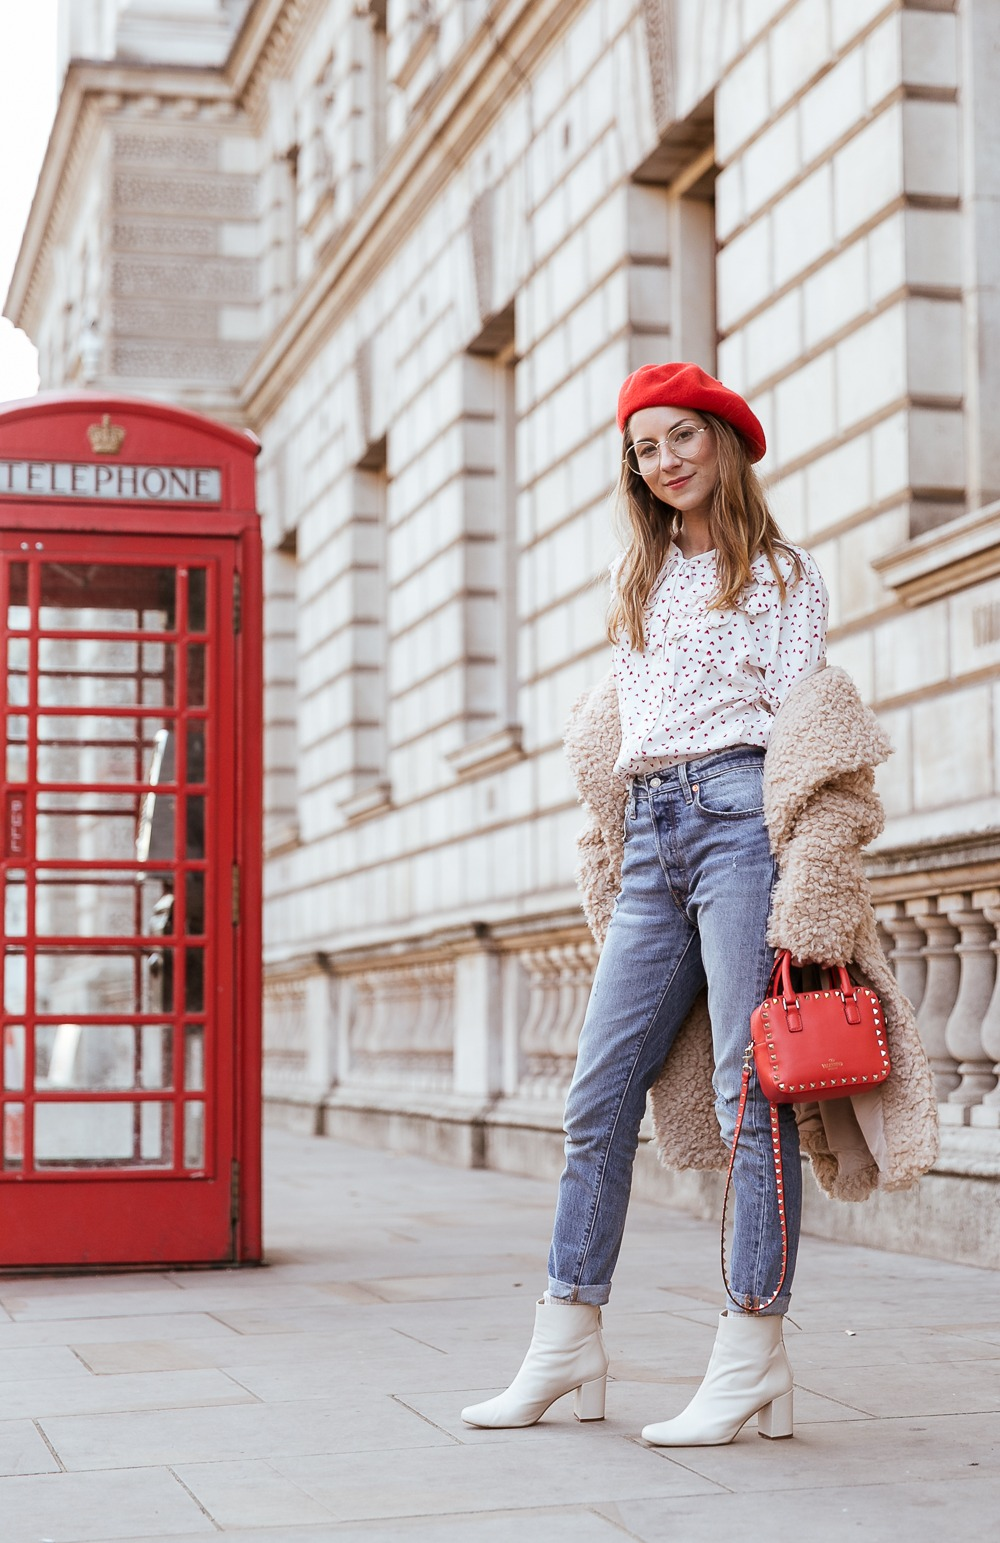 teddy coat levis 501 jeans red hat steffen schraut blouse hearts red valentino bag outfit street style london white boots veja du fashion blog